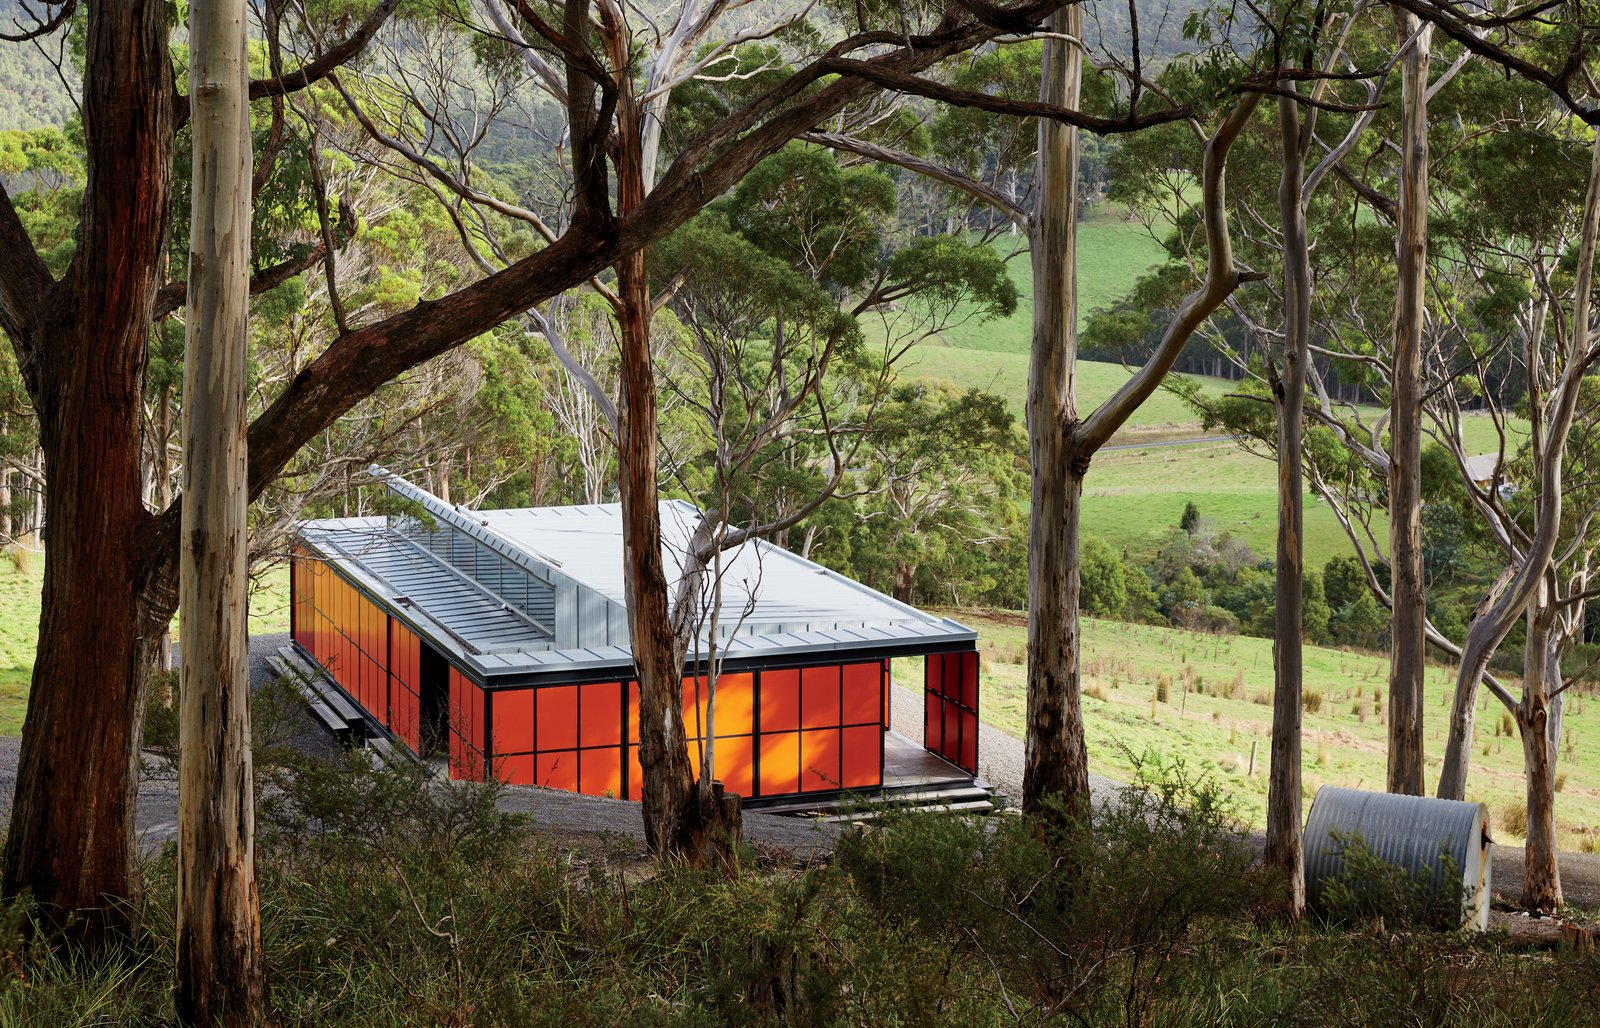 Exterior and House Building Type Upon his first visit to Tasmania, an island south of the Australian mainland, resident David Burns was immediately smitten with its varied, pristine landscape. Working with architecture firm Misho+Associates, he built a self-sustaining, 818-square-foot retreat that would allow him to completely unplug from urban life.  Best Photos from An Off-the-Grid Prefab that Combines Open Plan Living with Rugged Durability